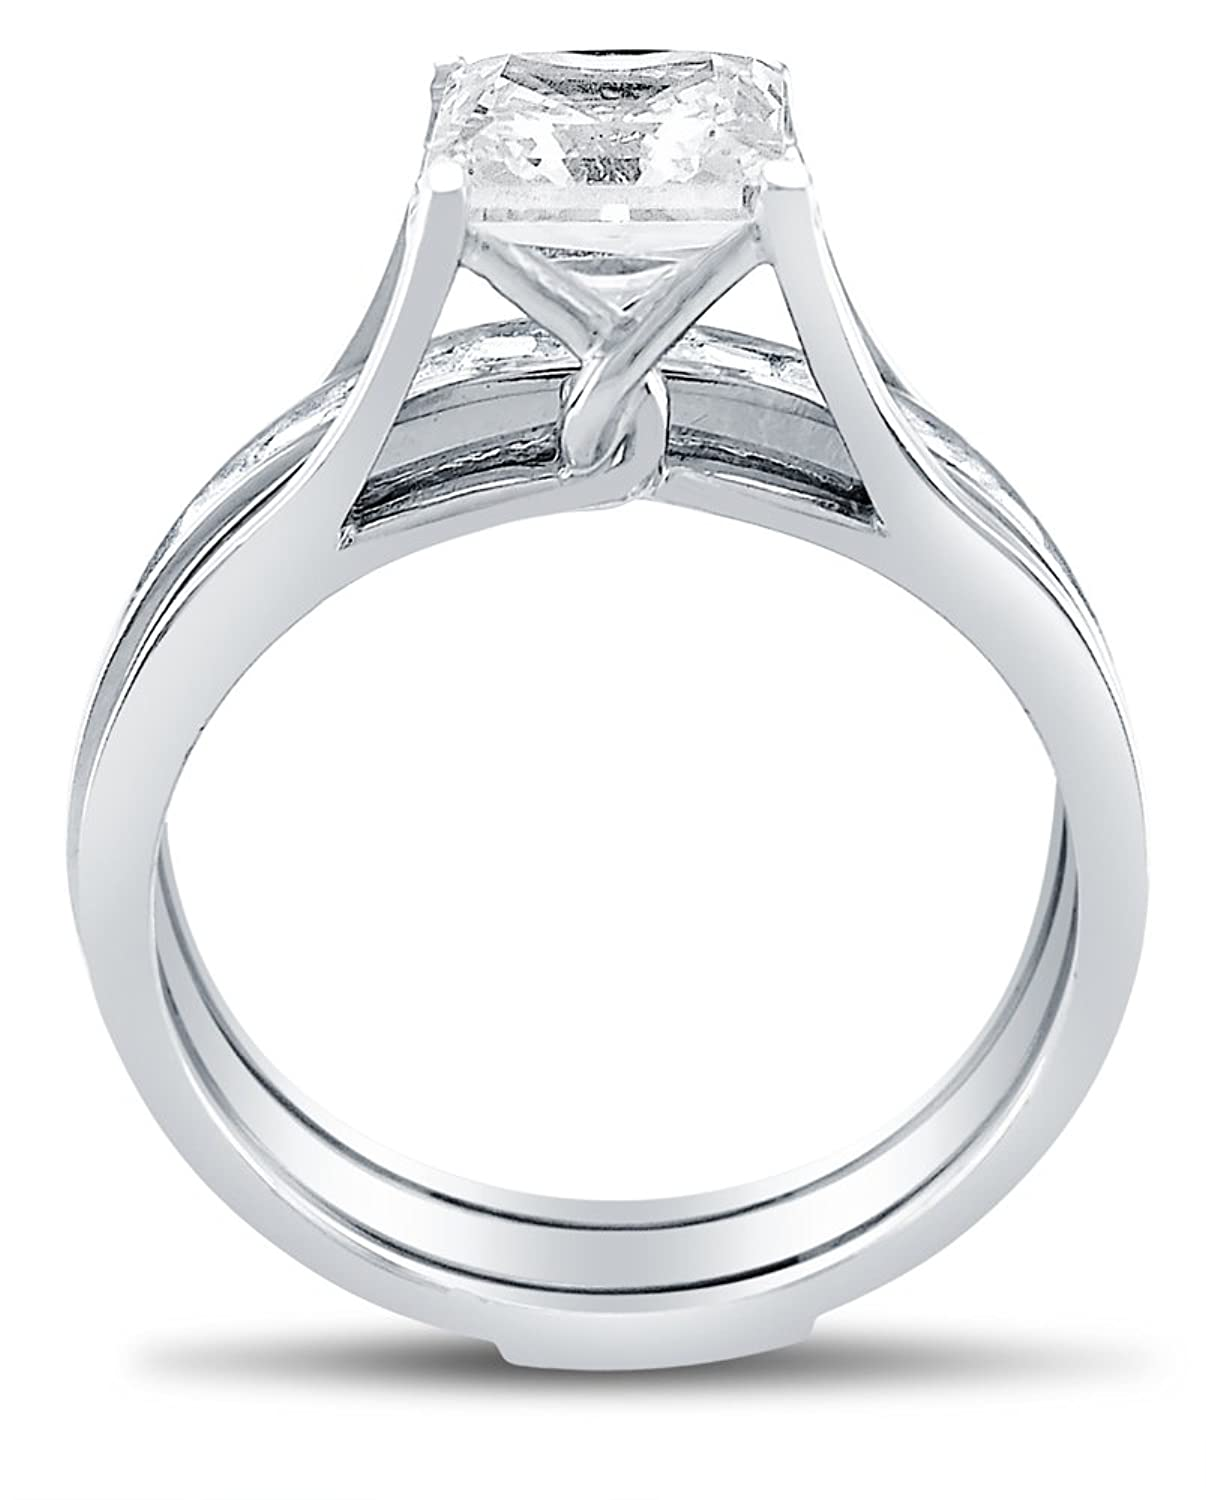 pt diamond platinum women products princess halo rings with ring engagement india m in cut for setting jl solitaire